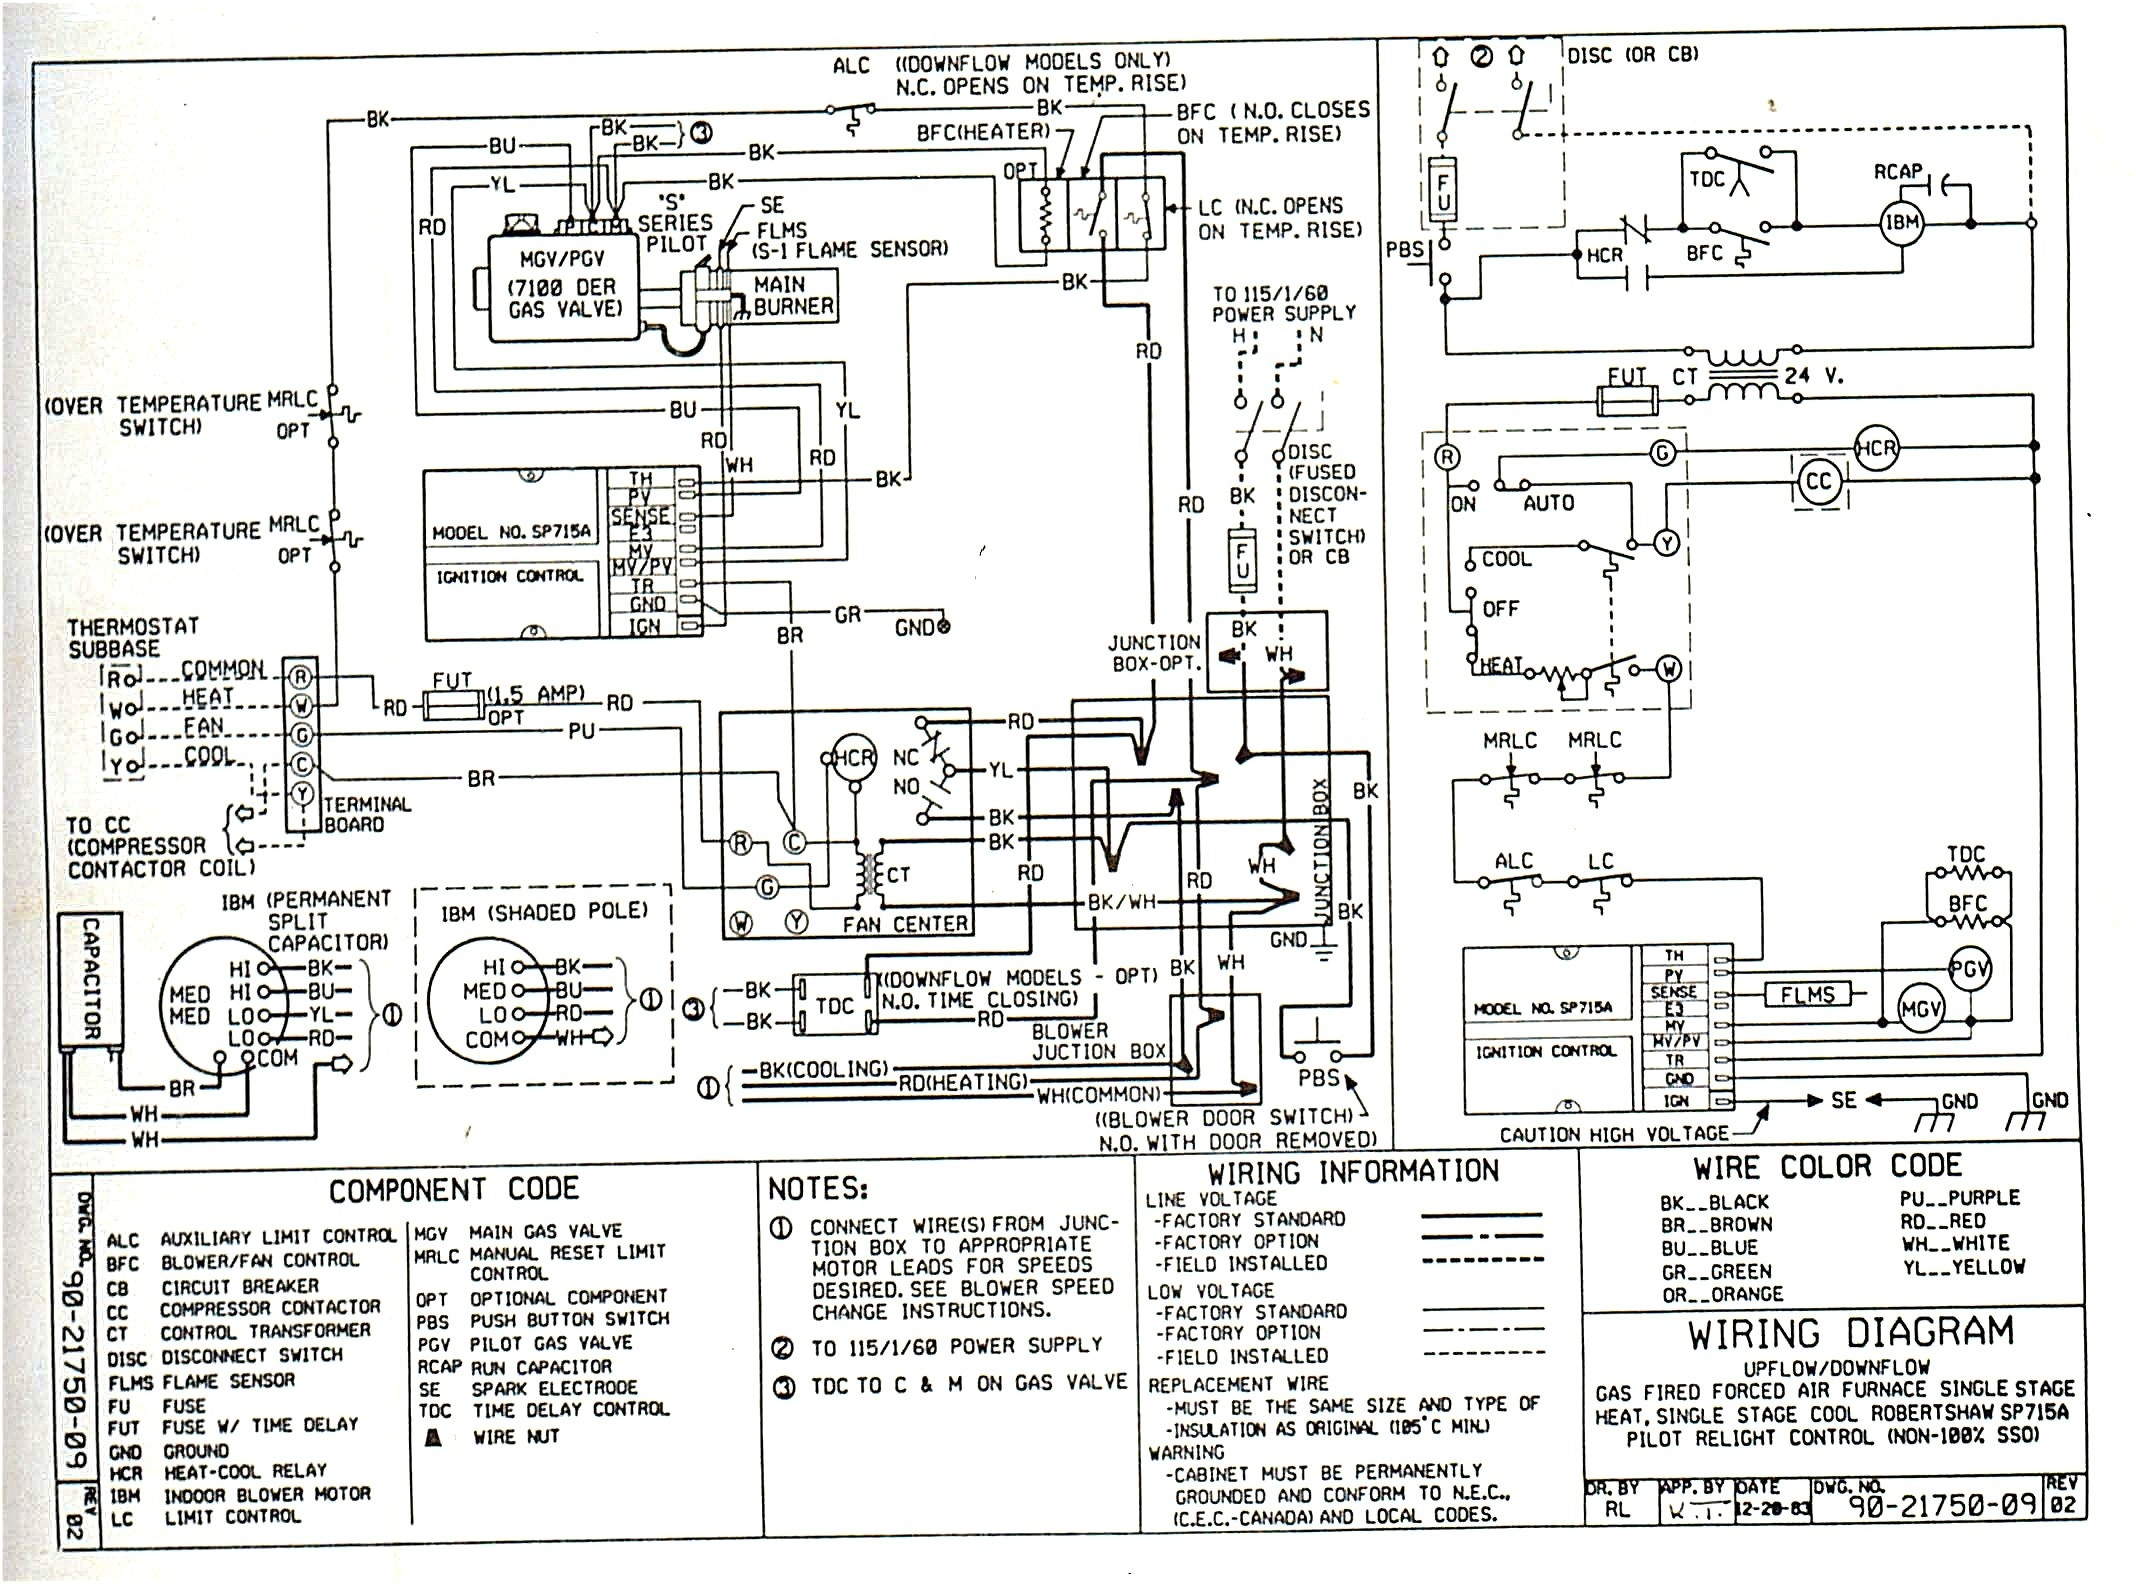 carrier evolution wiring diagram free picture tempstar heat pump wiring diagram | free wiring diagram john deere 4020 24 volt wiring diagram free picture #7